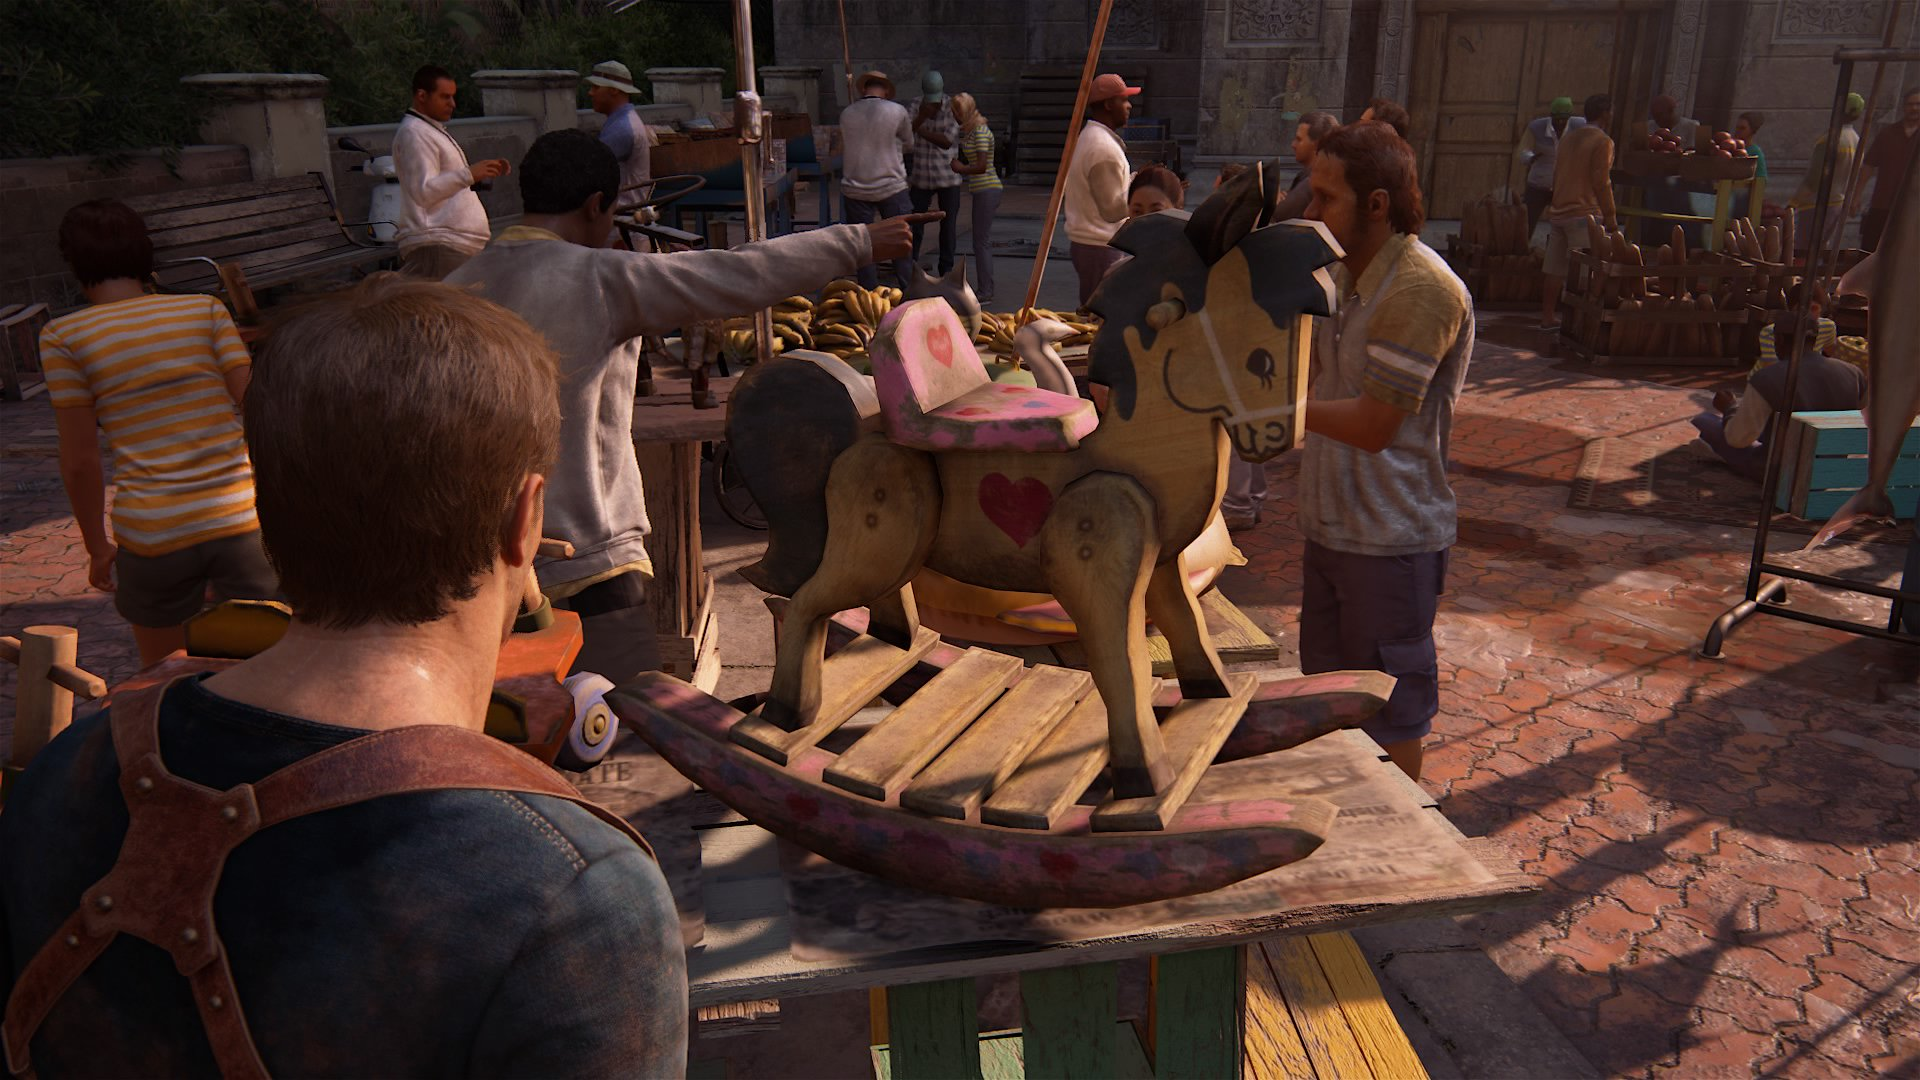 Naughty Dog's Uncharted 4 Sold Over 2.7 Million Units 1